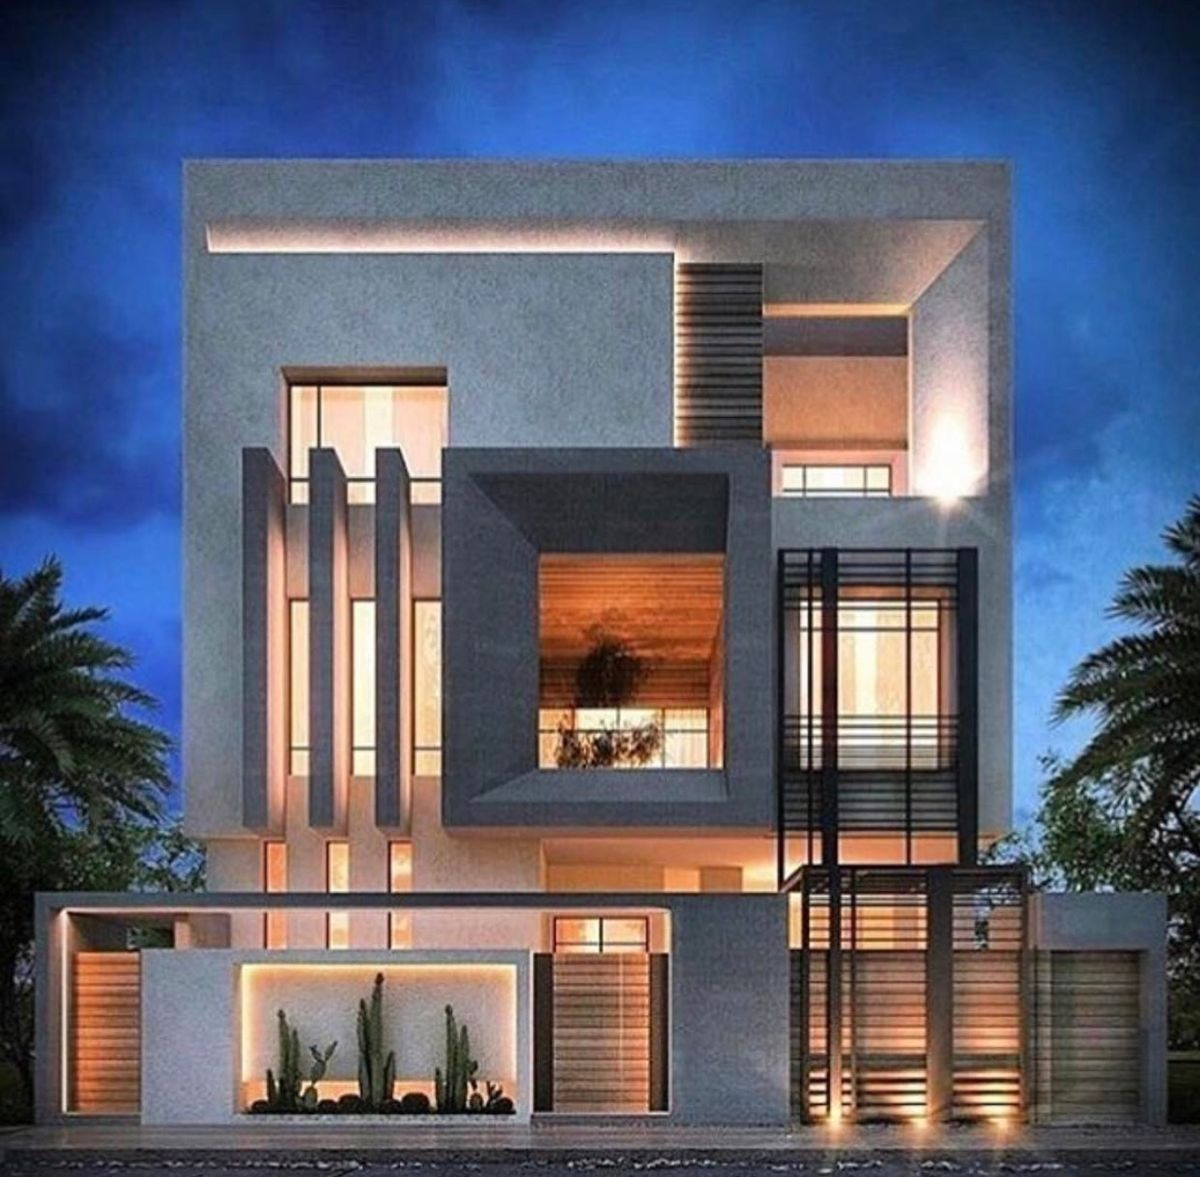 home designs latestmodern dream house exterior designs house interior design ideas 29 Best Modern Dream House Exterior Designs You Will Amazed. Home.